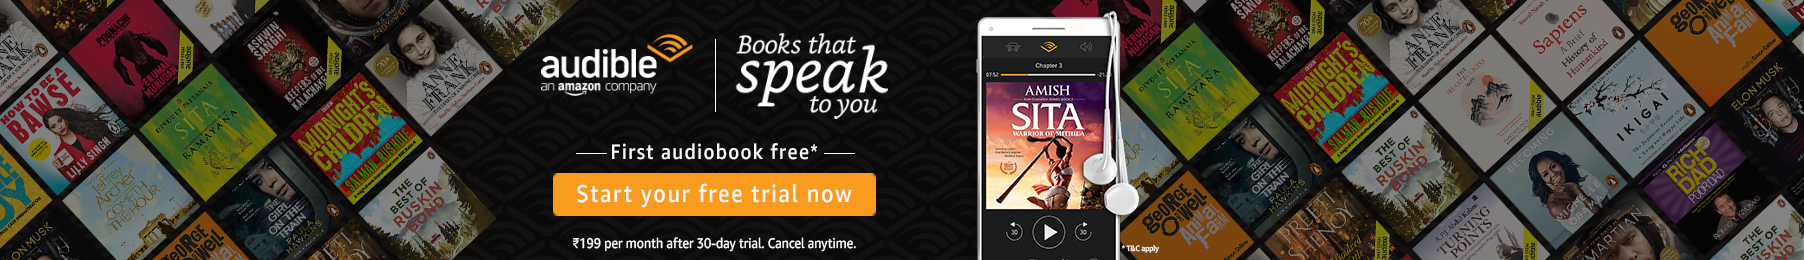 Audible Book Online India 2020